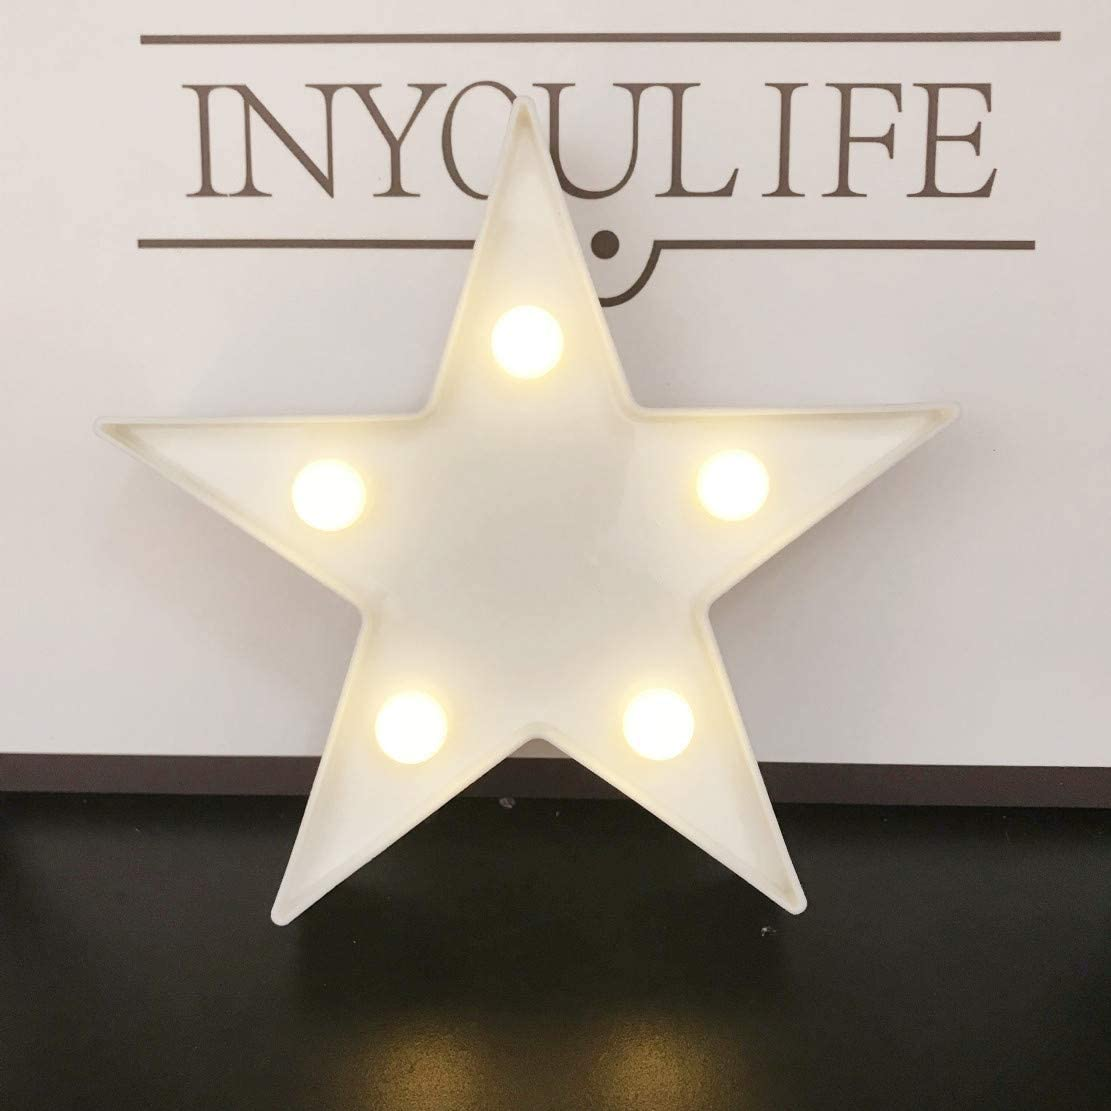 Little Star Light Led Plastic Star Sign Lighted Marquee Star Sign Wall Decor For Christmas Birthday Party Kids Room Living Room Wedding Party Decor Romantic Deco Lamp Night Table Light White Amazon Com